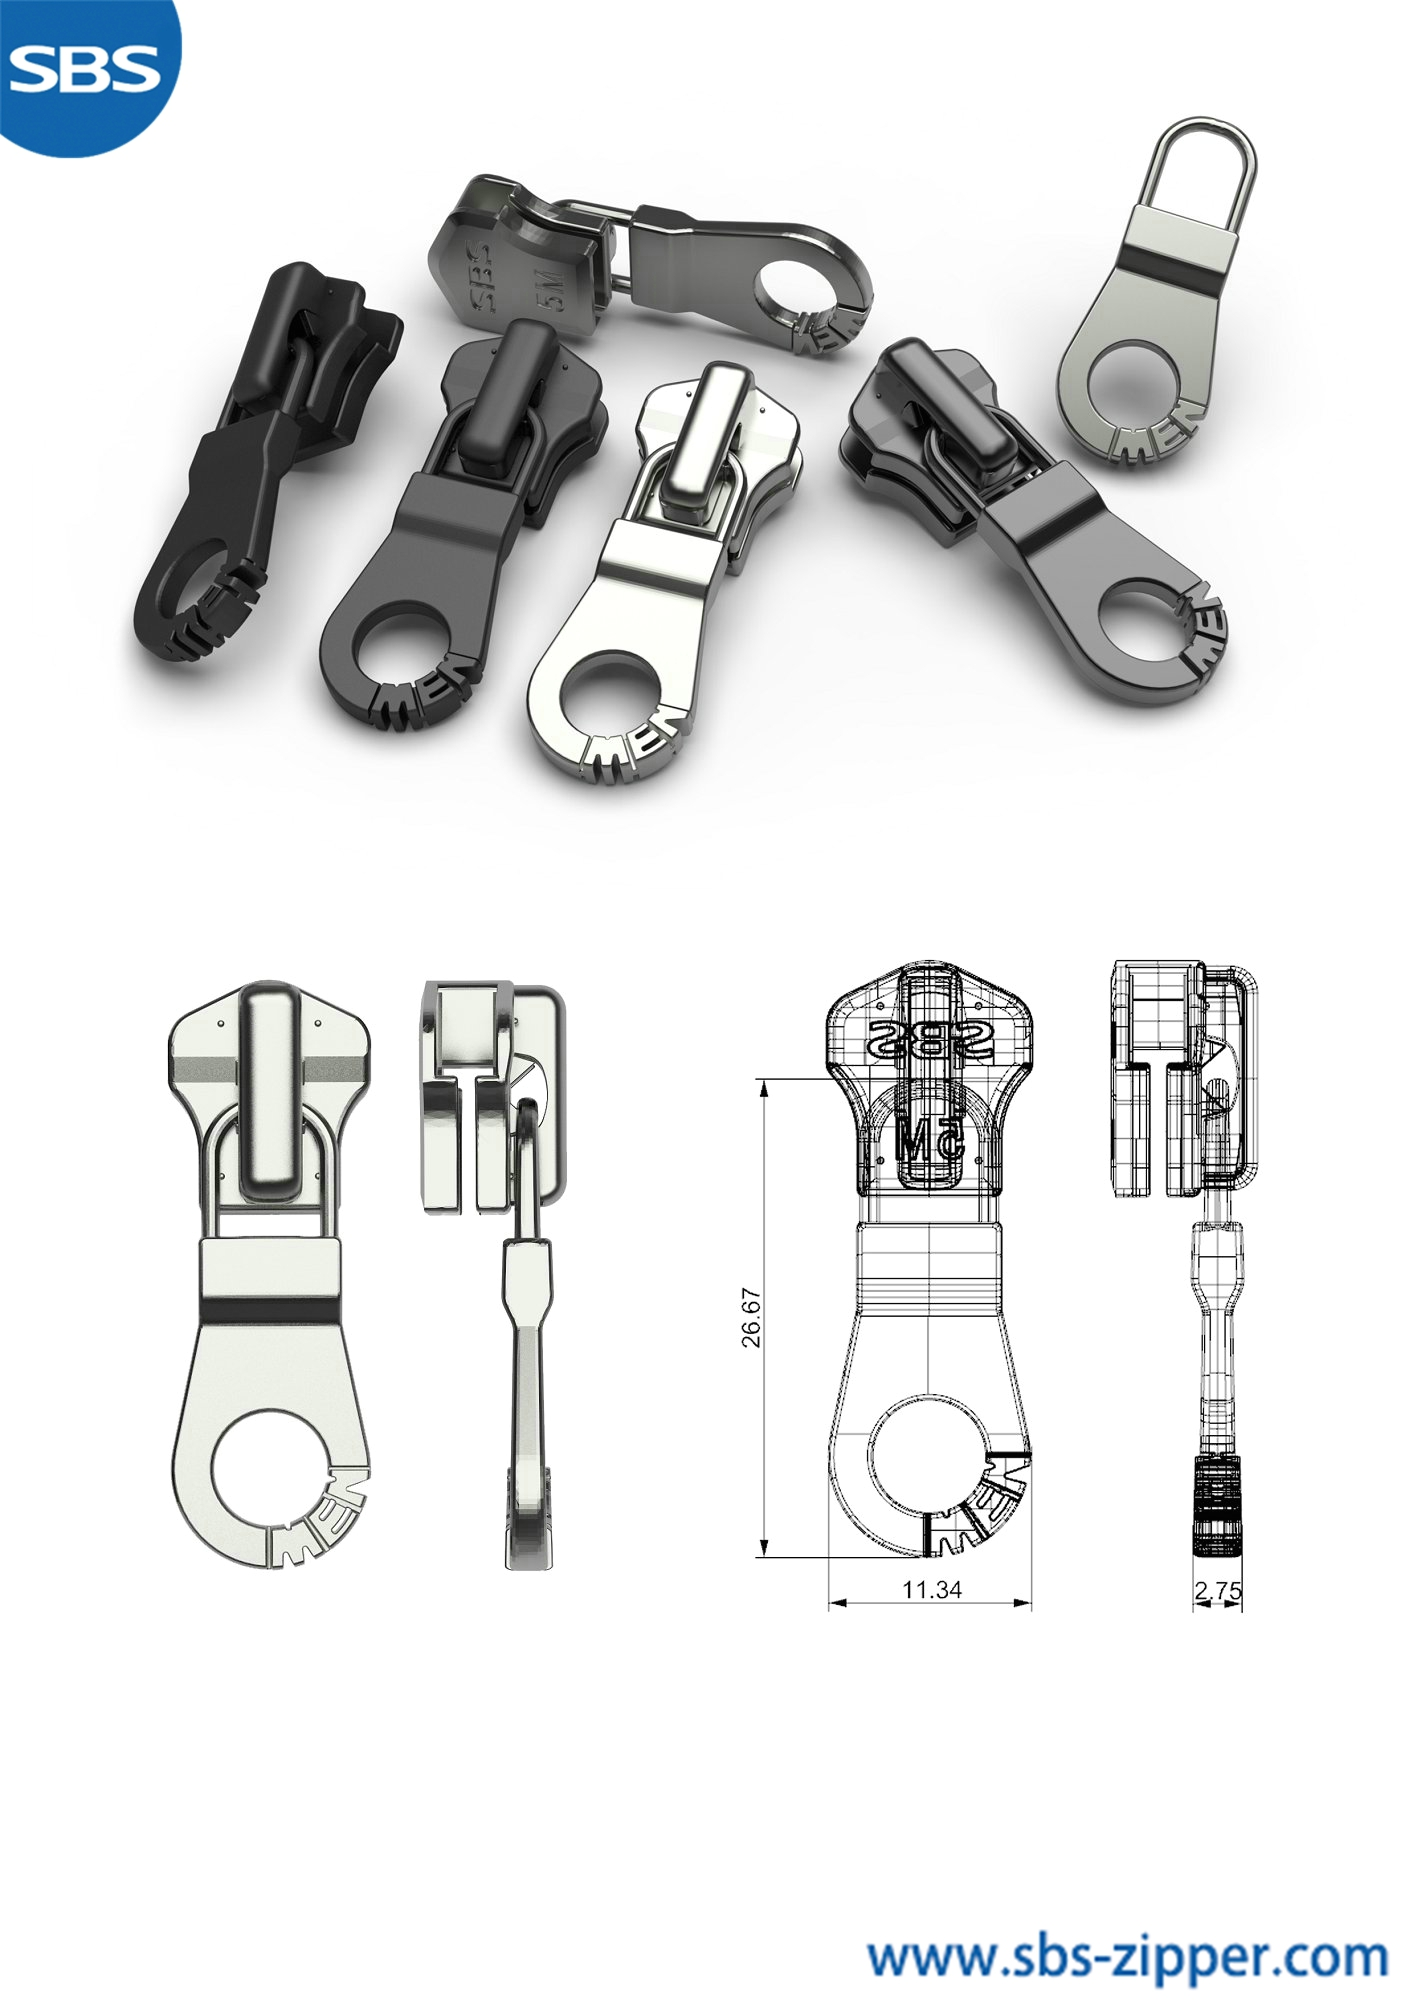 Personalized Zipper Pulls Manufacturer 18AMC019丨SBS Zipper